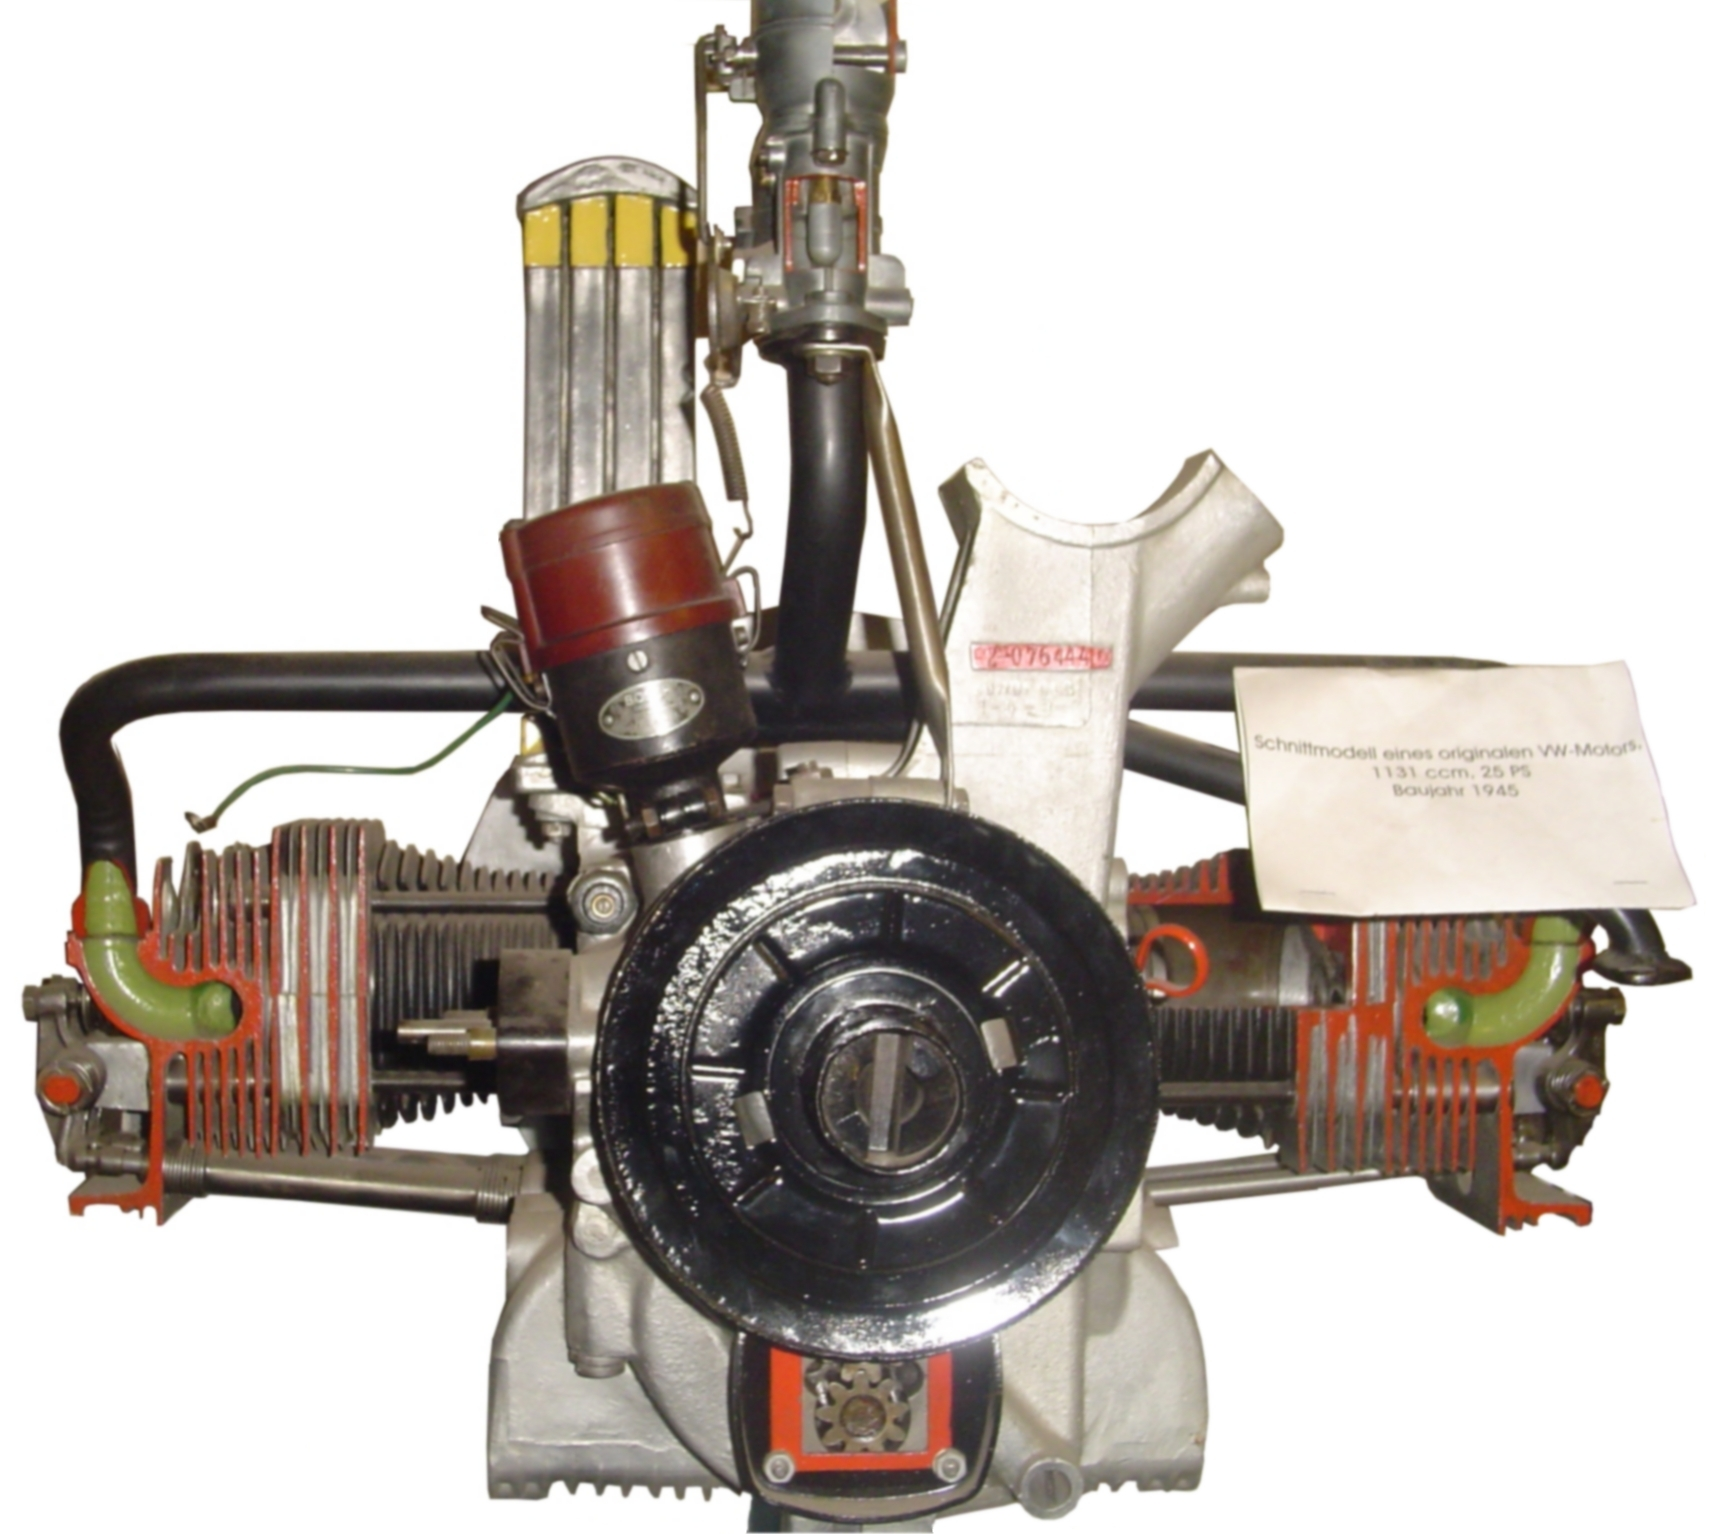 Flat Four Engine Wikipedia 1976 1000 Cc Honda Goldwing Wiring Diagram